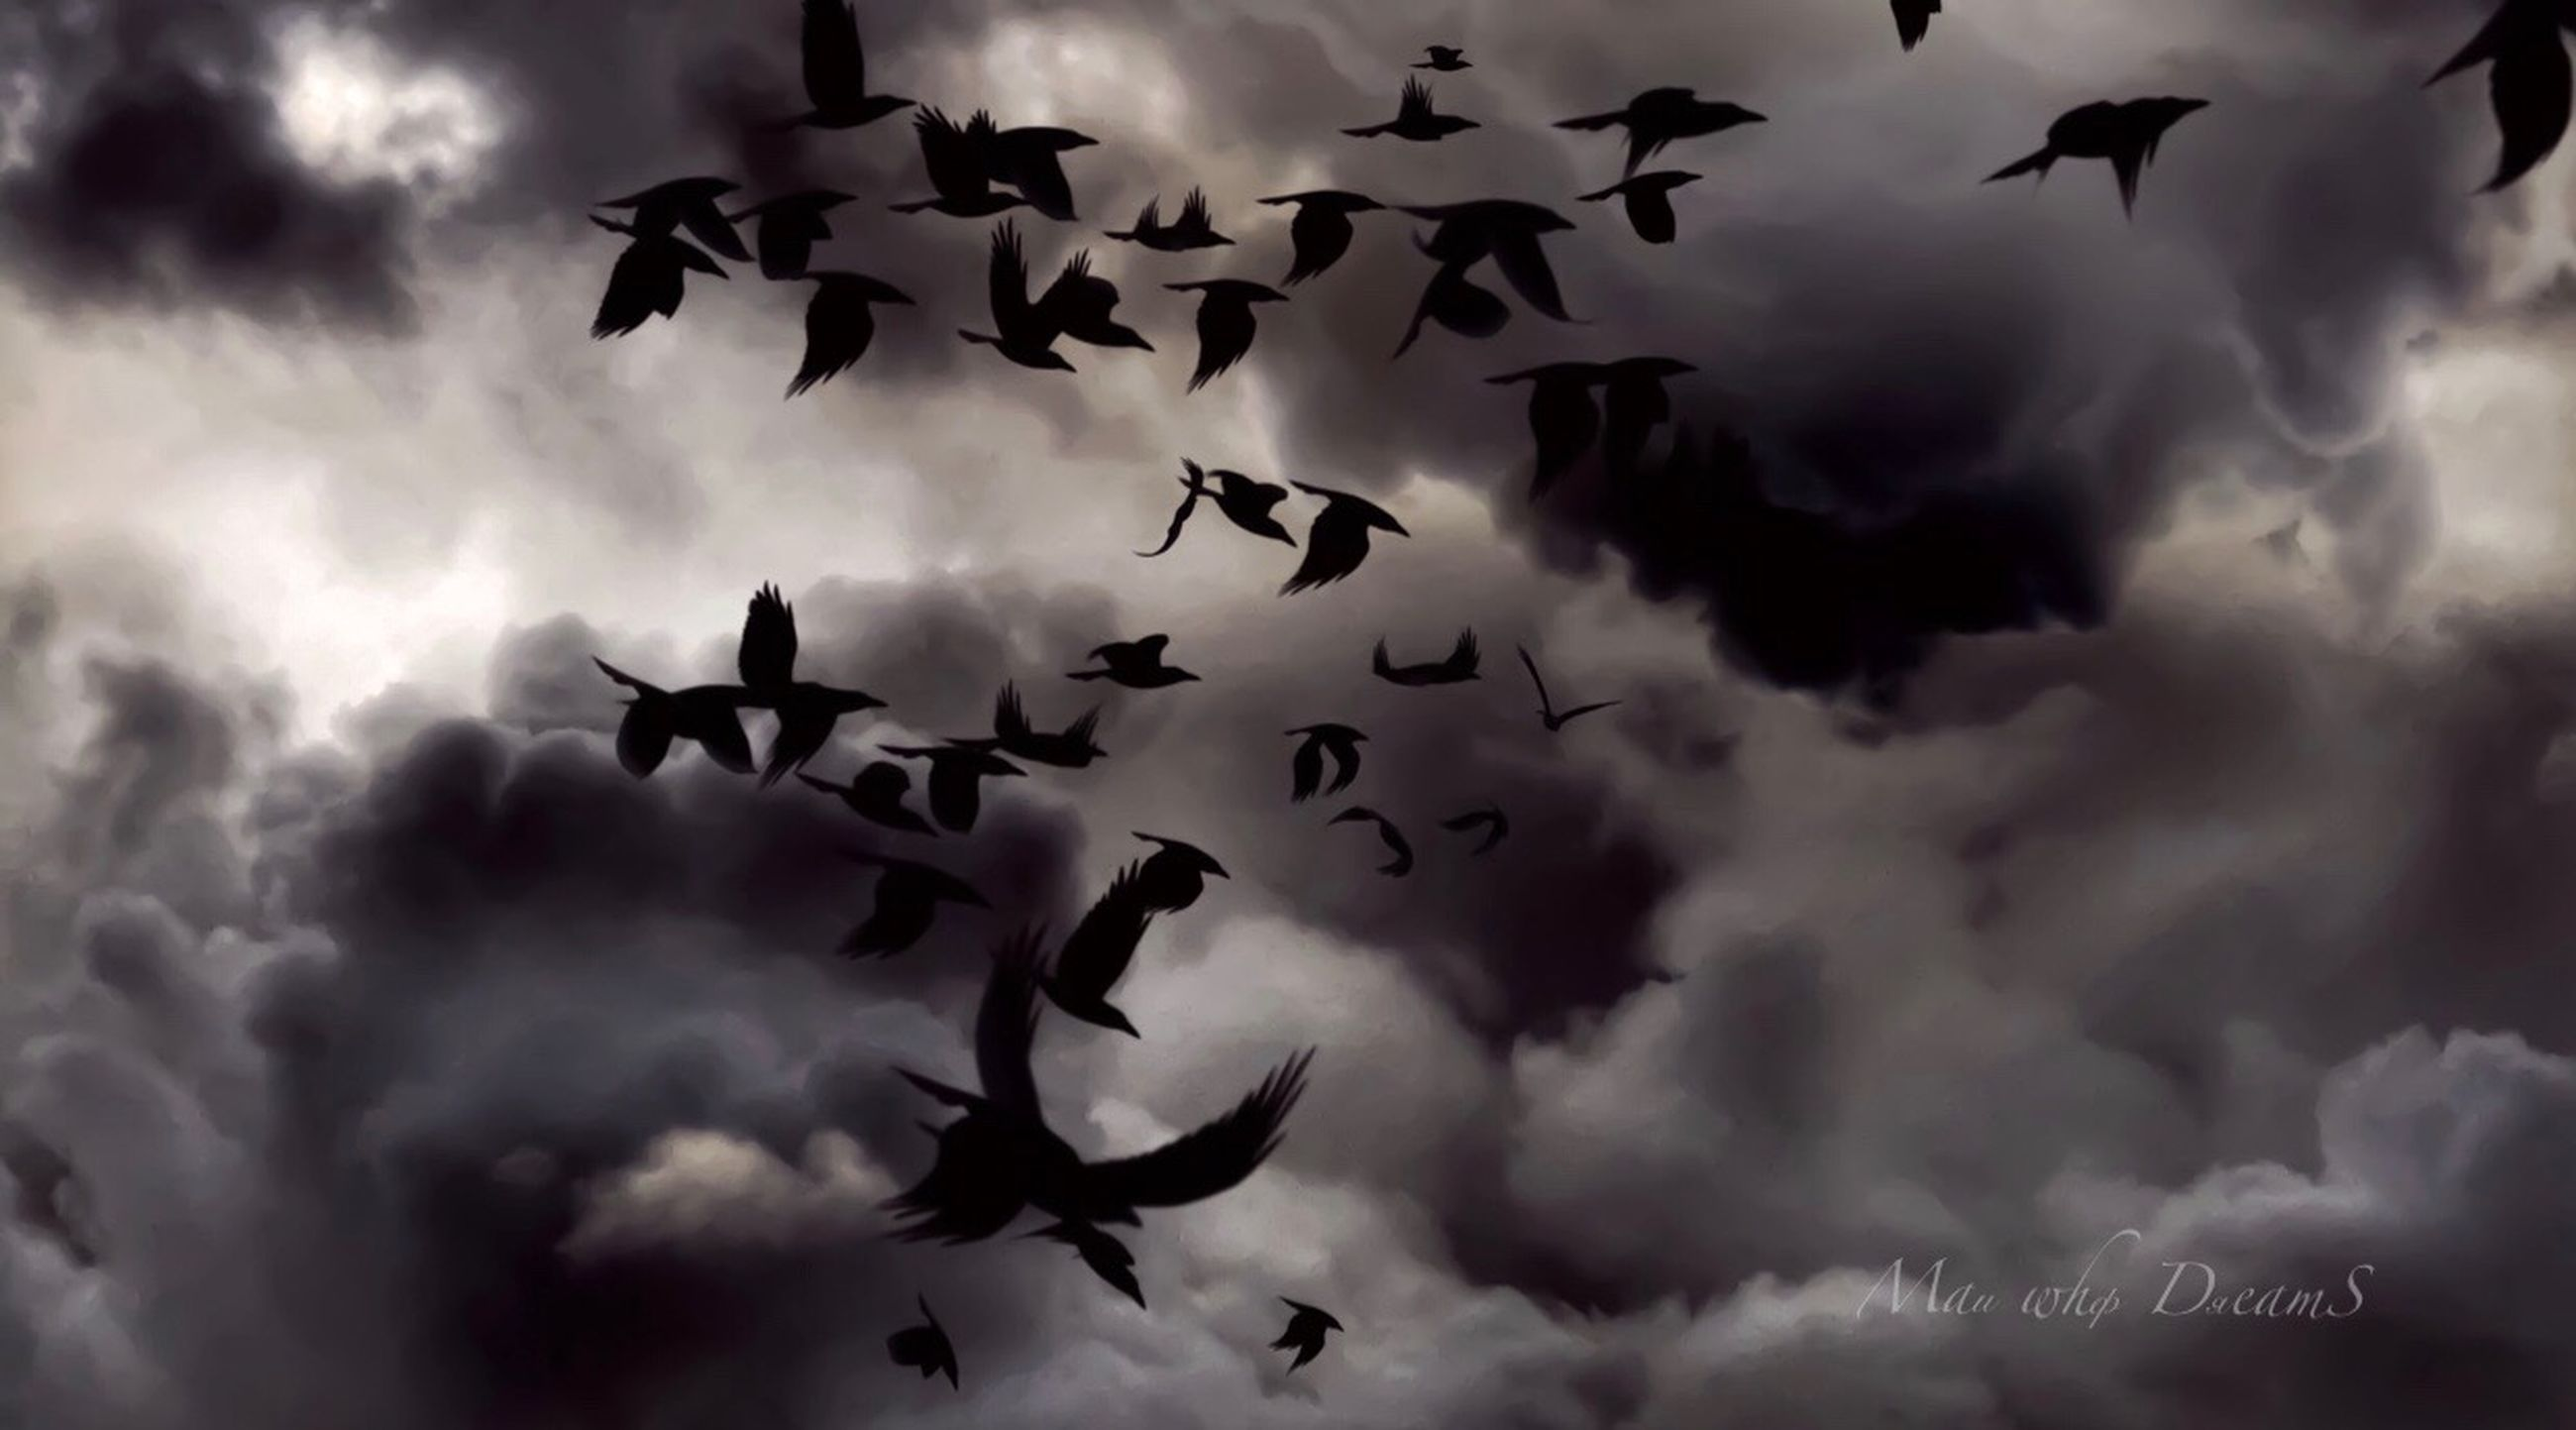 cloud - sky, sky, flying, low angle view, bird, vertebrate, nature, no people, large group of animals, animal, animals in the wild, animal themes, animal wildlife, flock of birds, beauty in nature, silhouette, storm, mid-air, outdoors